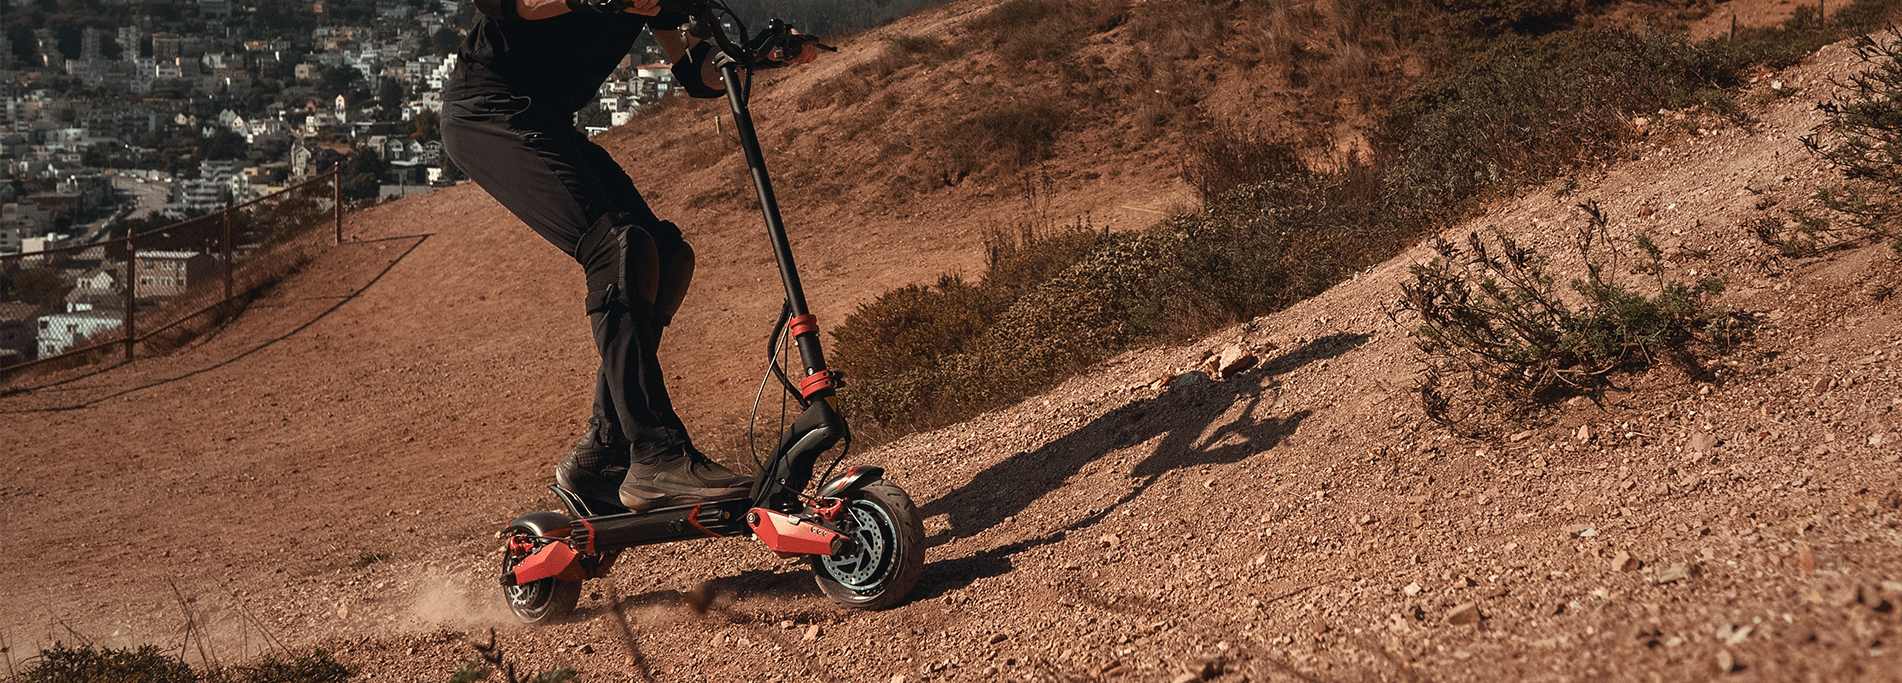 varla offroad electric scooter